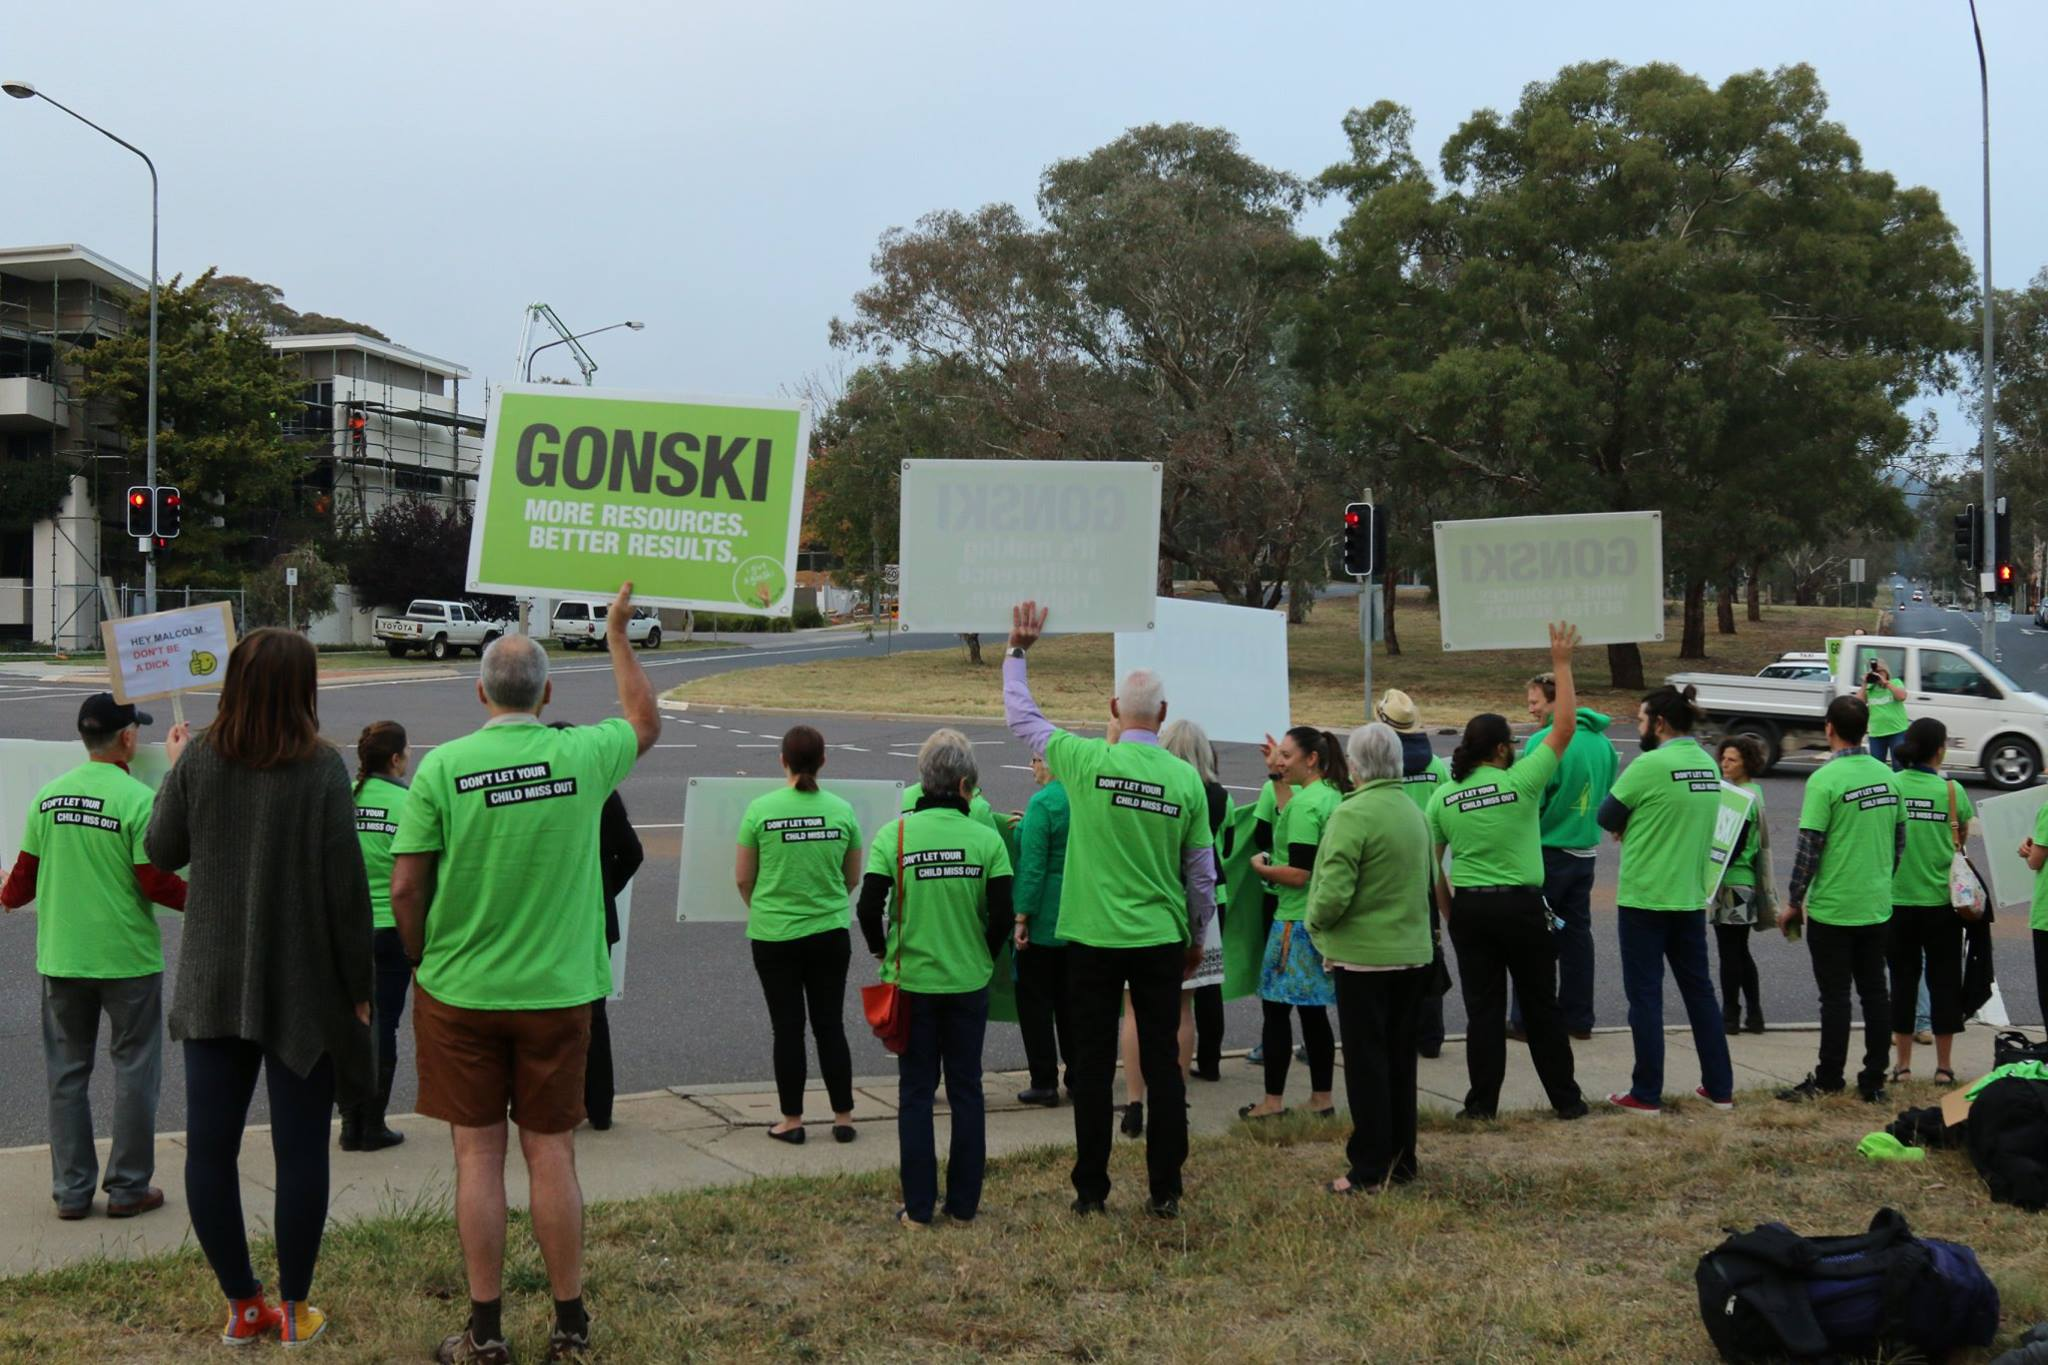 Gonski_Morning_COAG_2.jpg